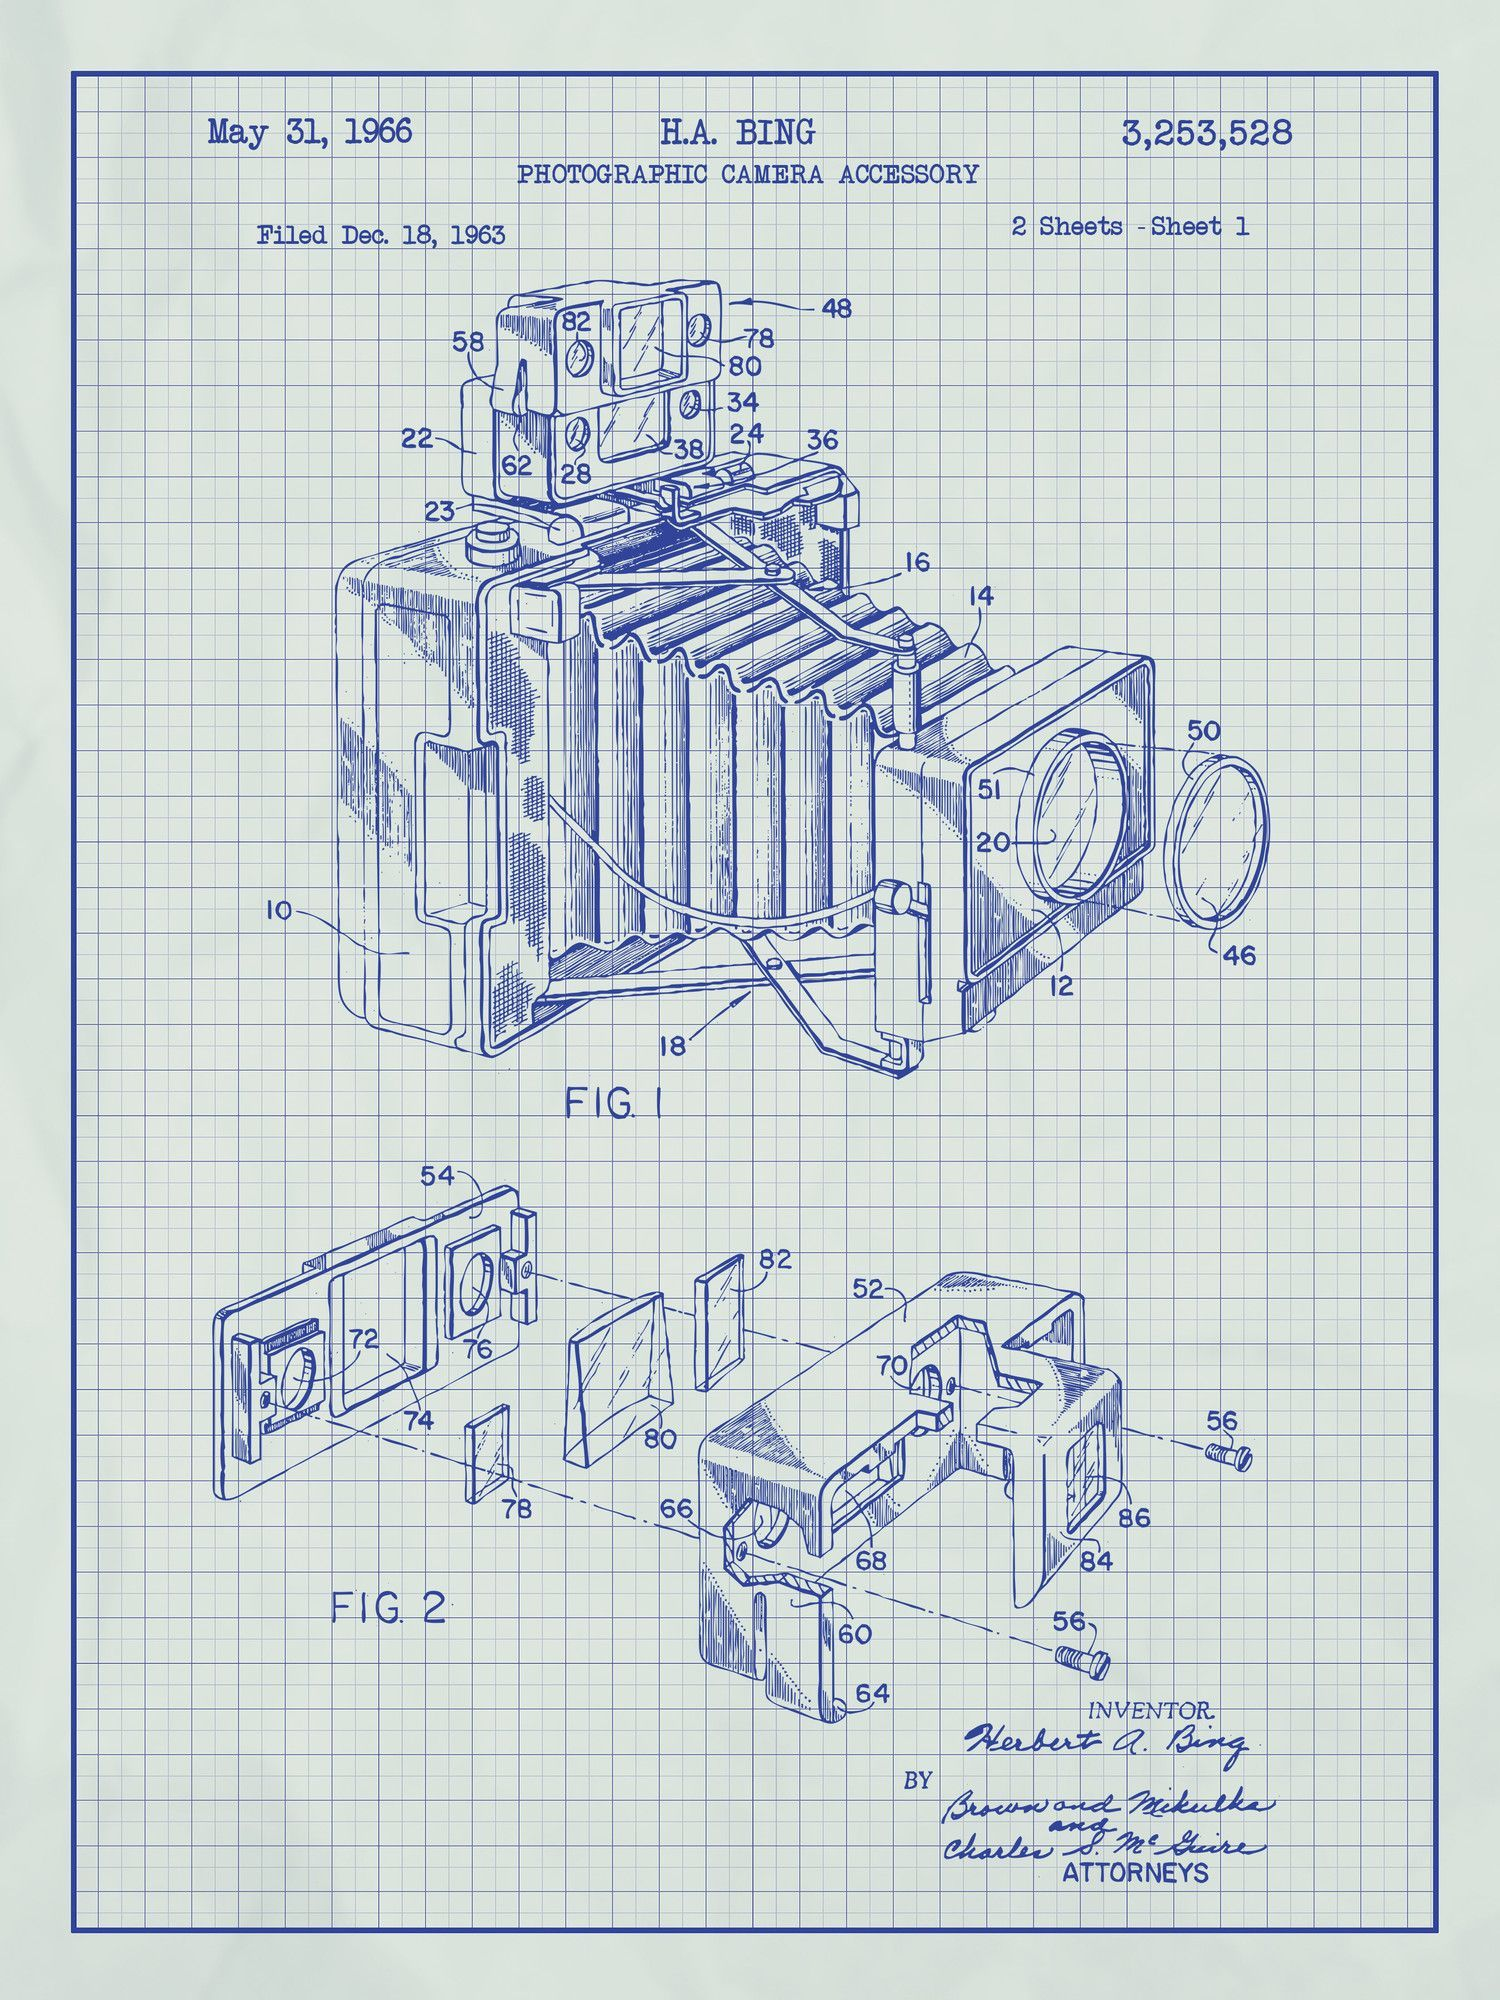 Photographic camera blueprint graphic art pinterest art posters photographic camera blueprint graphic art poster in white gridblue ink malvernweather Choice Image